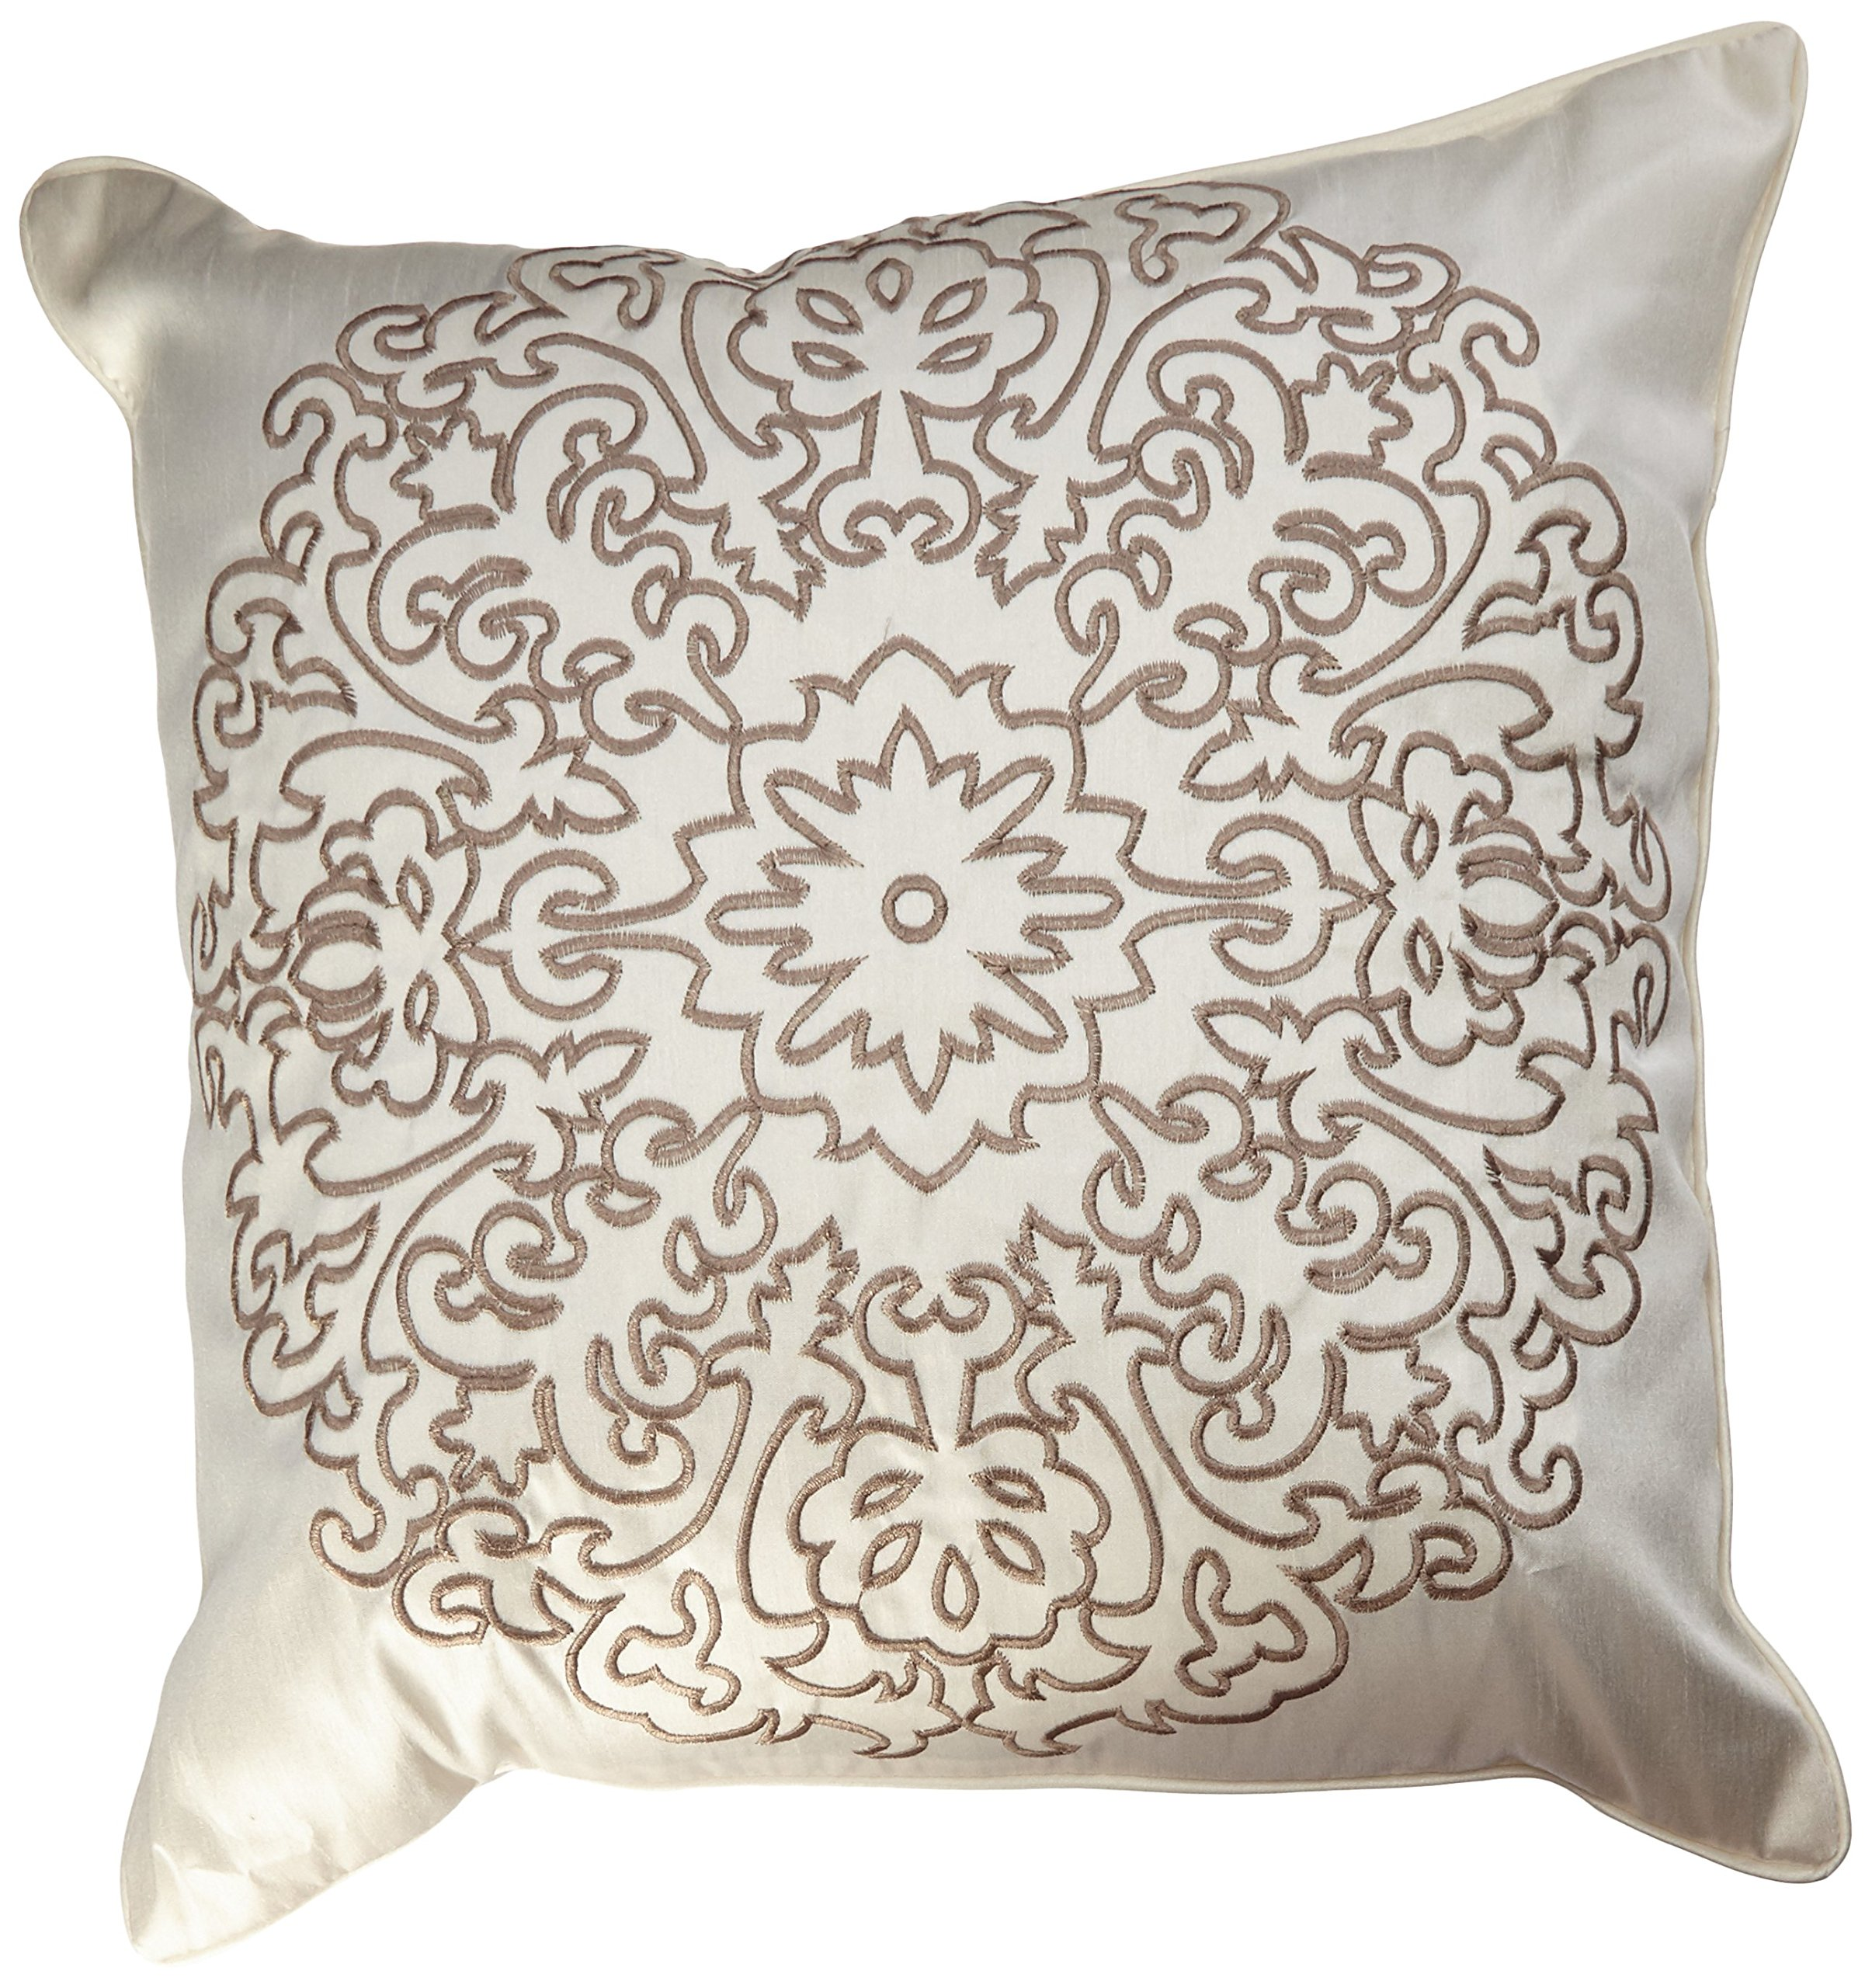 Stone Cottage Medallion Embroidered Decorative Pillow, 18-Inch - Decorative pillow is 18 inches Pillow features embroidery details Pillow has polyester filling - living-room-soft-furnishings, living-room, decorative-pillows - 9114IZ0hCOL -